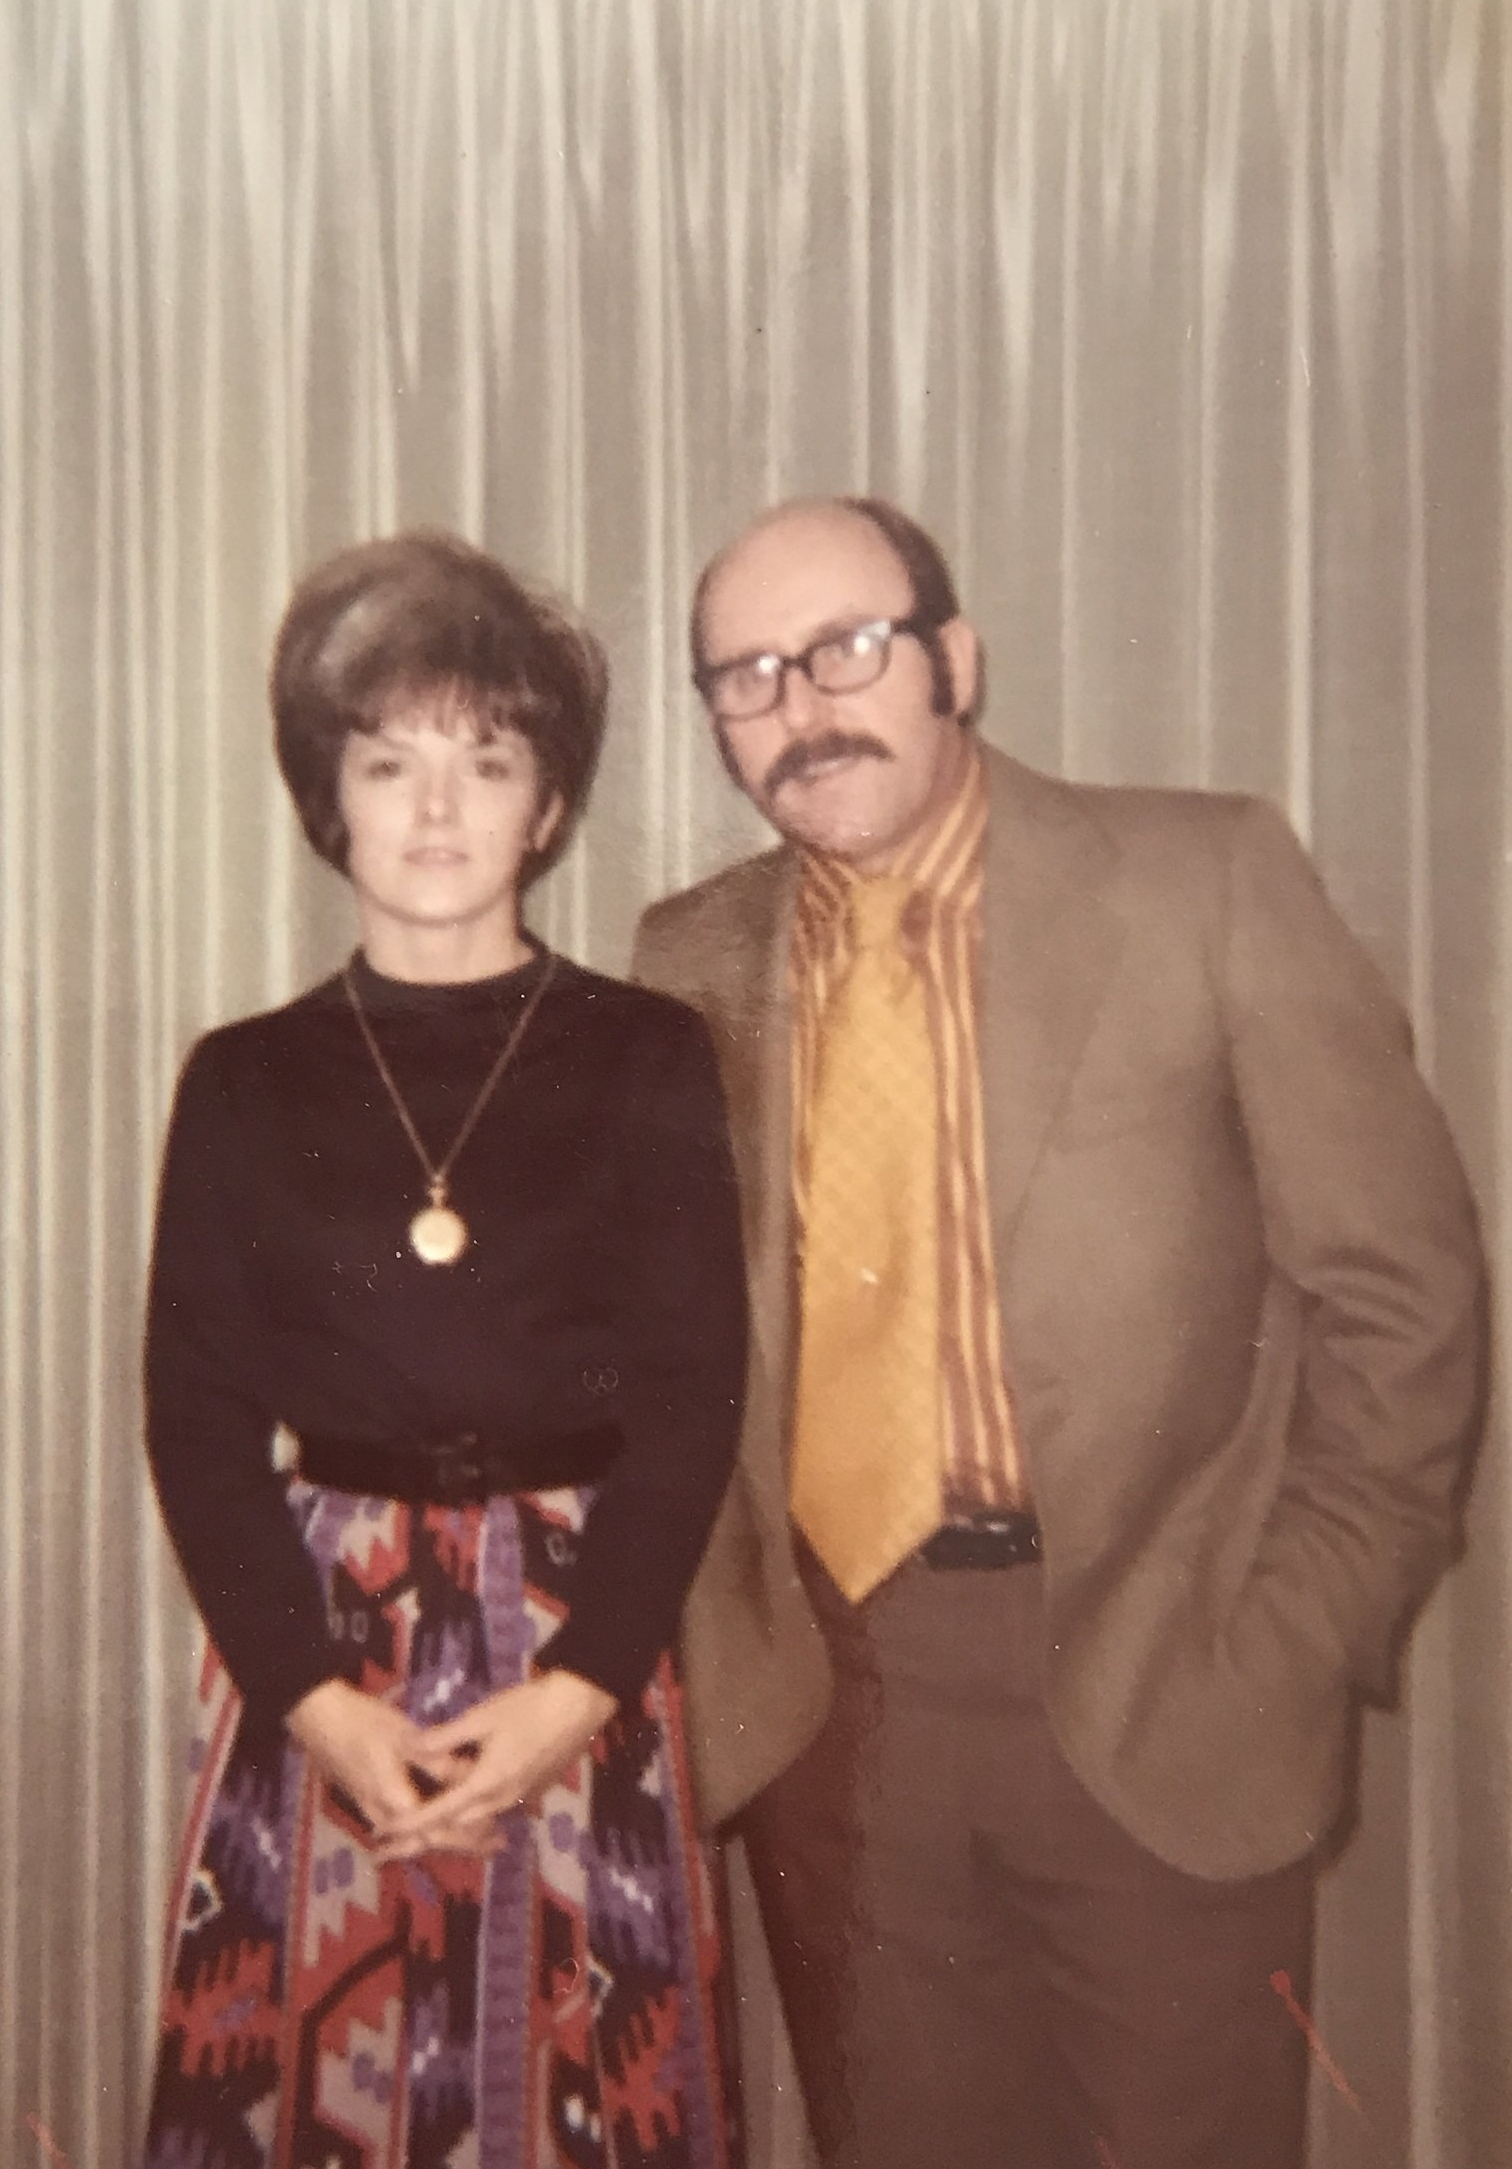 Mom and Dad looking mod in 1971.